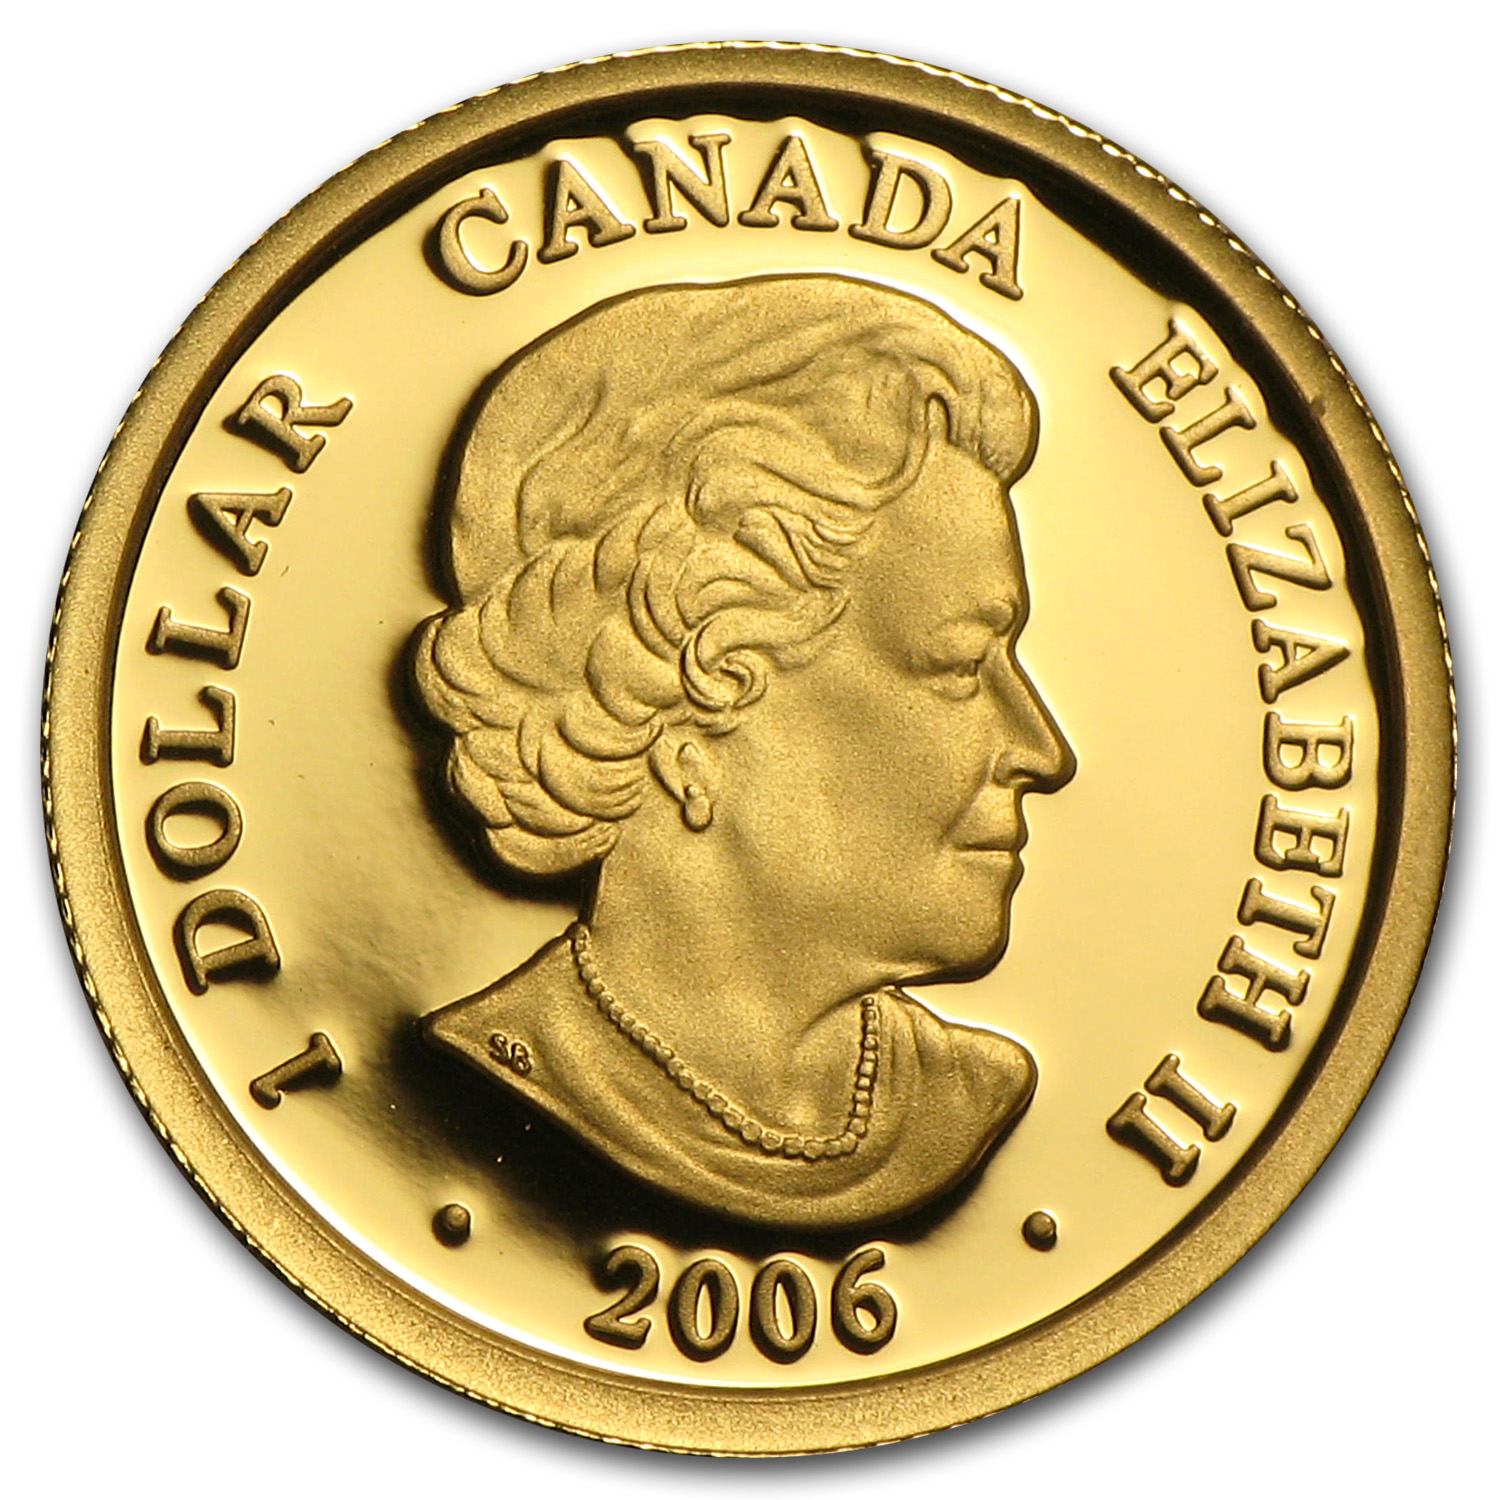 2006 Canada 1/20 oz Proof Gold $1 Louis d'or aux deux L